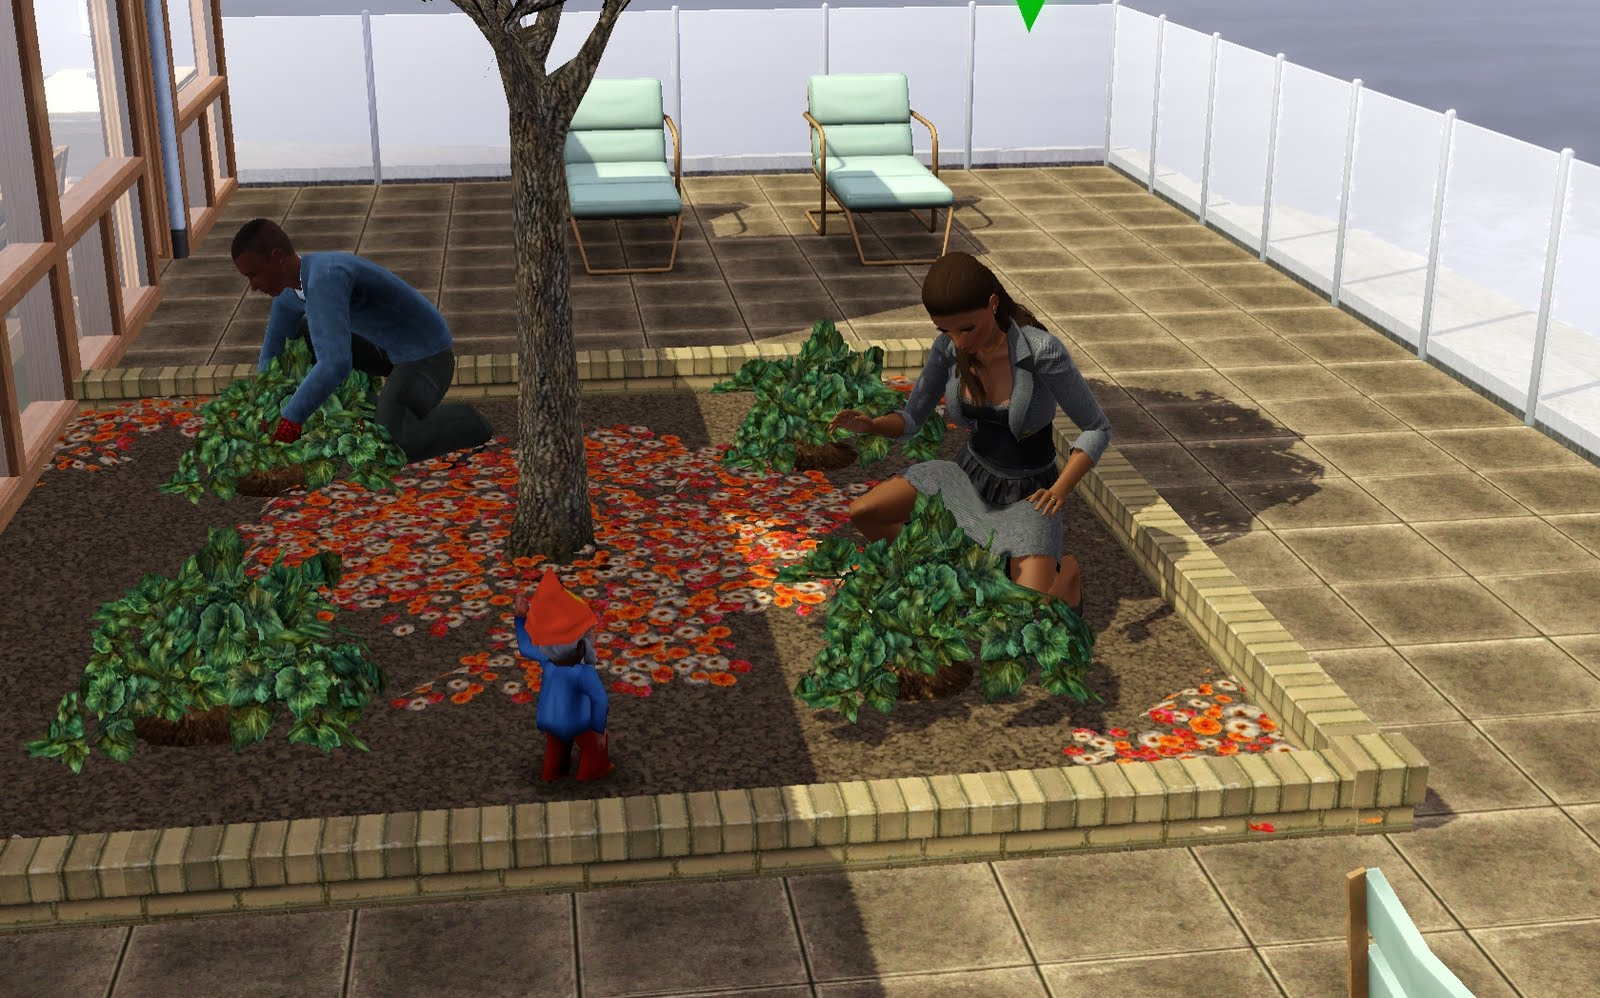 Summer's Little Sims 3 Garden: How To Build a Rooftop or ...